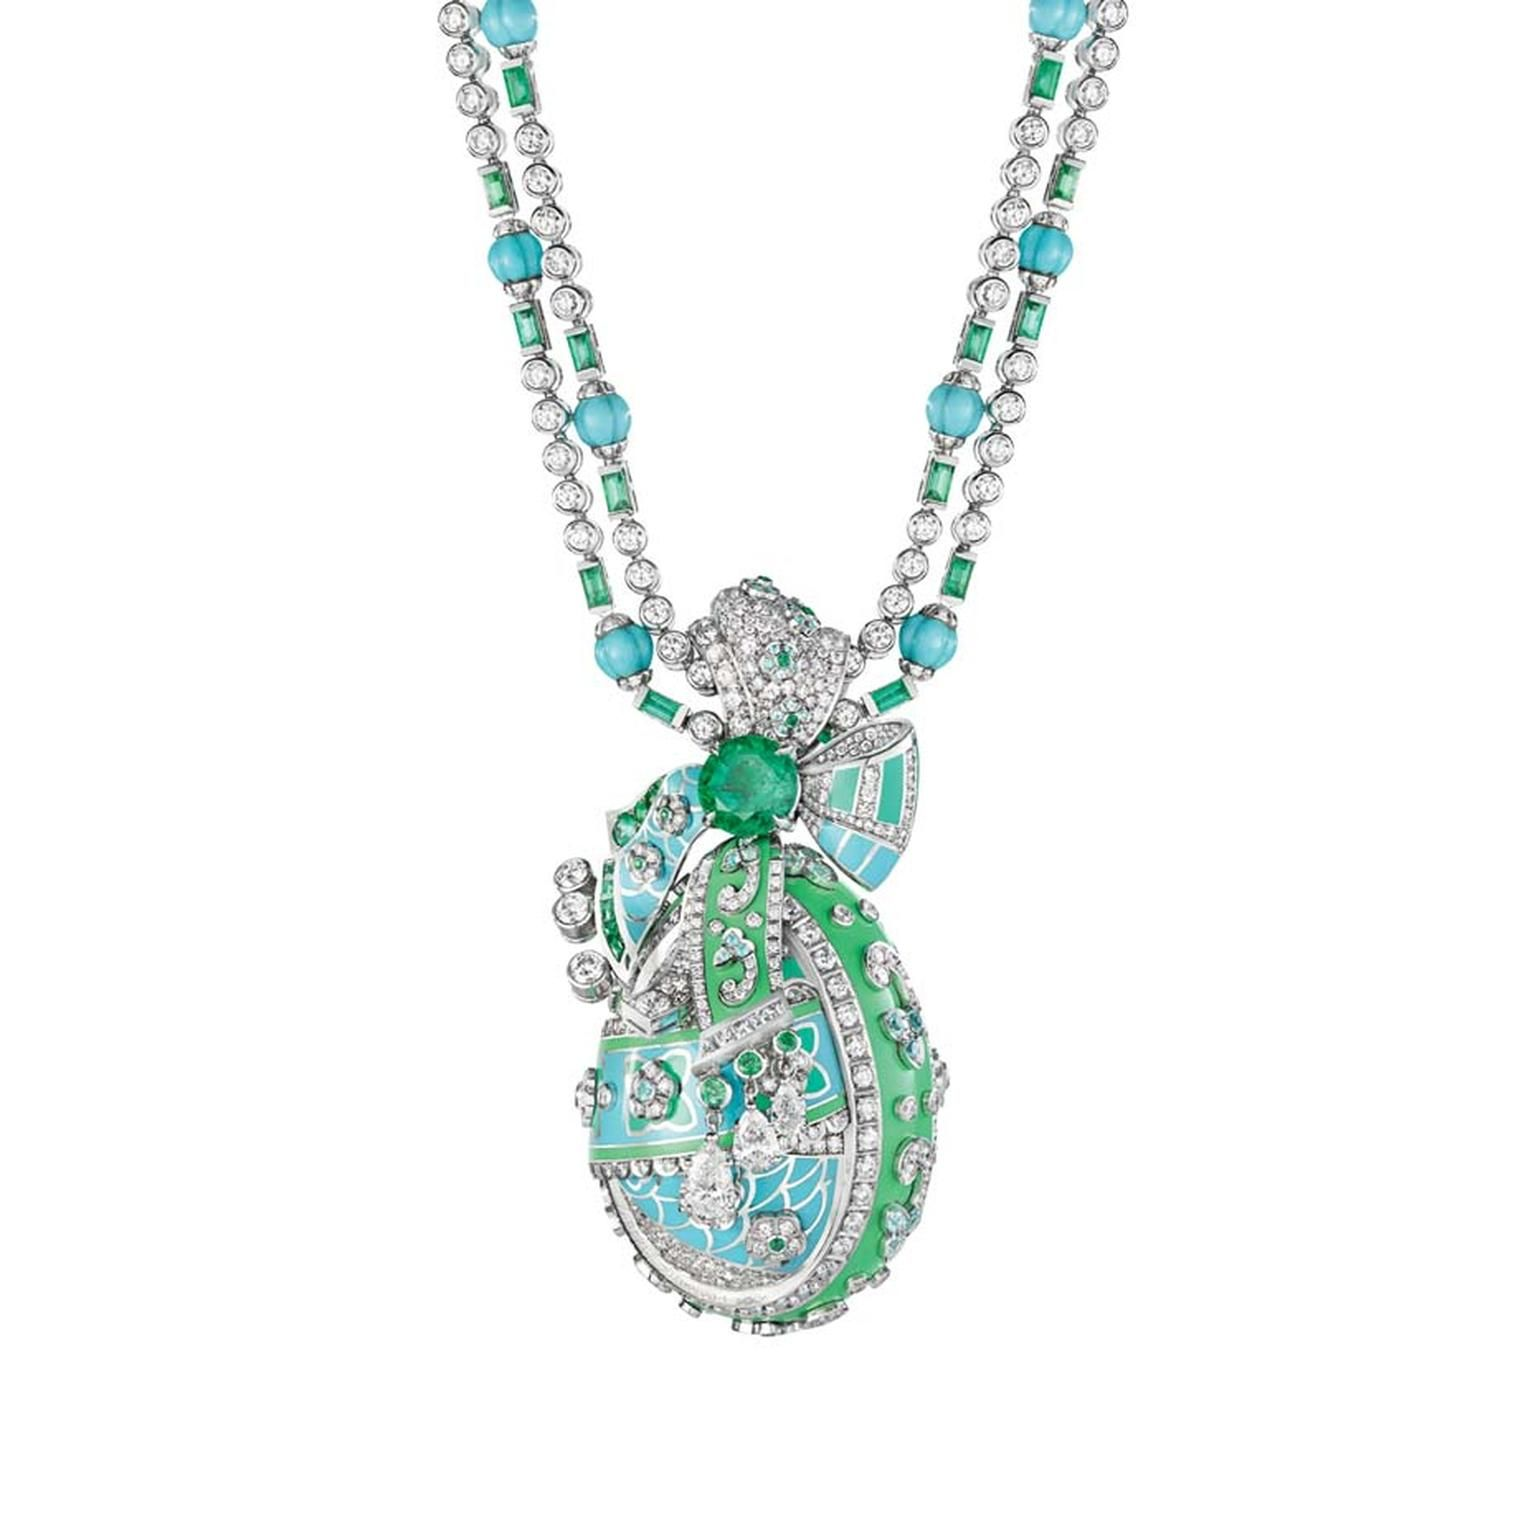 Fabergé necklace from the summer in provence high jewellery